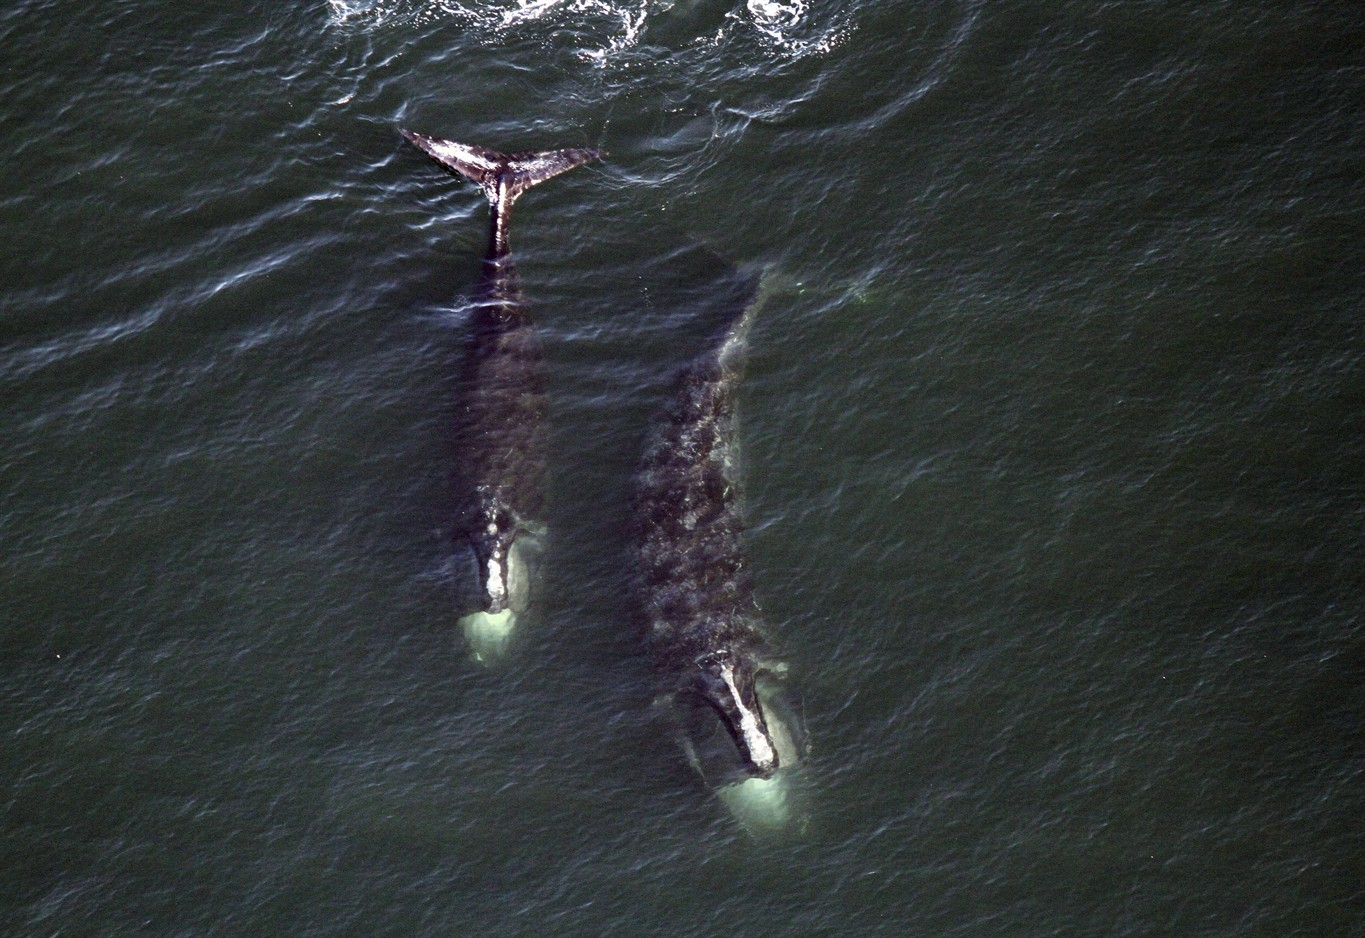 Rising right whale death toll could be